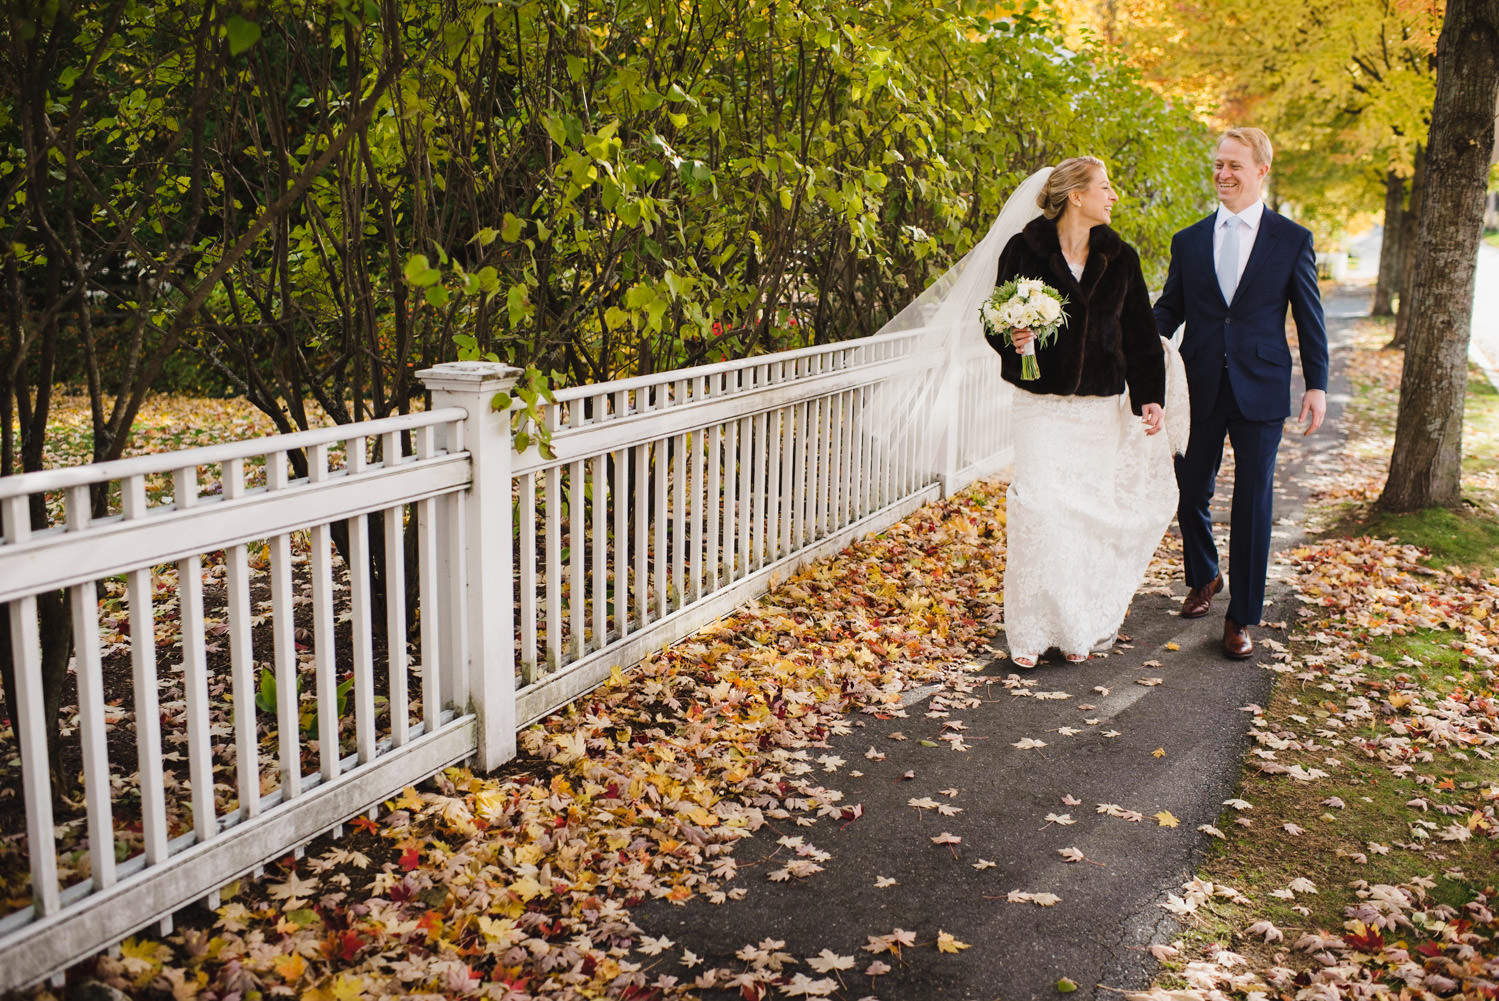 Woodstock, Vermont Wedding newlyweds walking in fall leaves photo